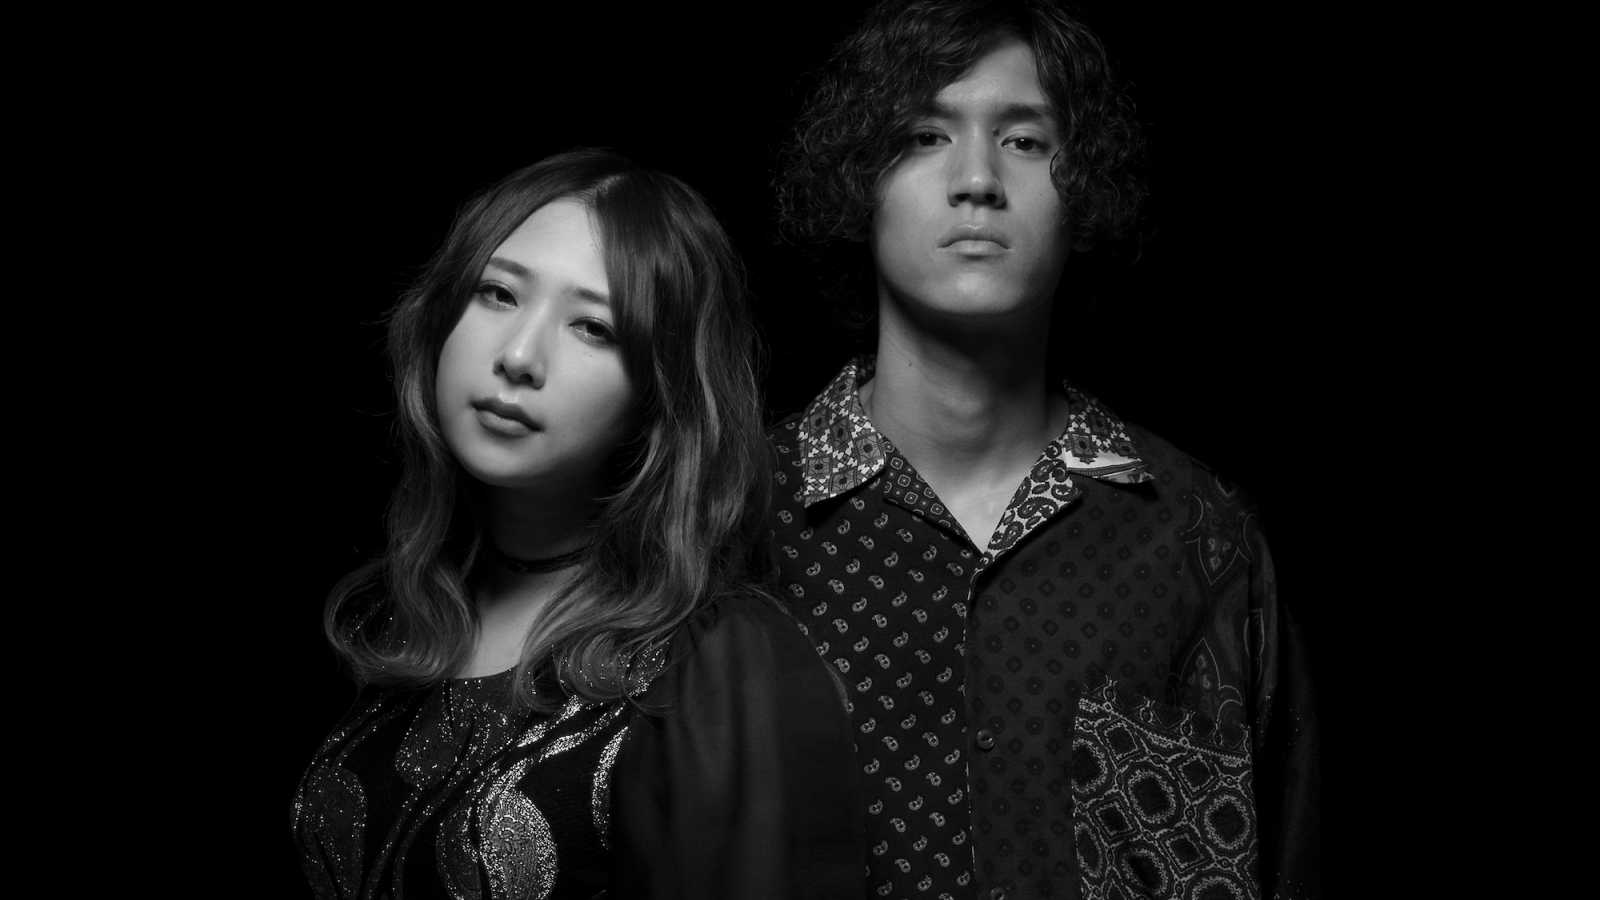 Nowy album GLIM SPANKY © UNIVERSAL MUSIC LLC. All rights reserved.